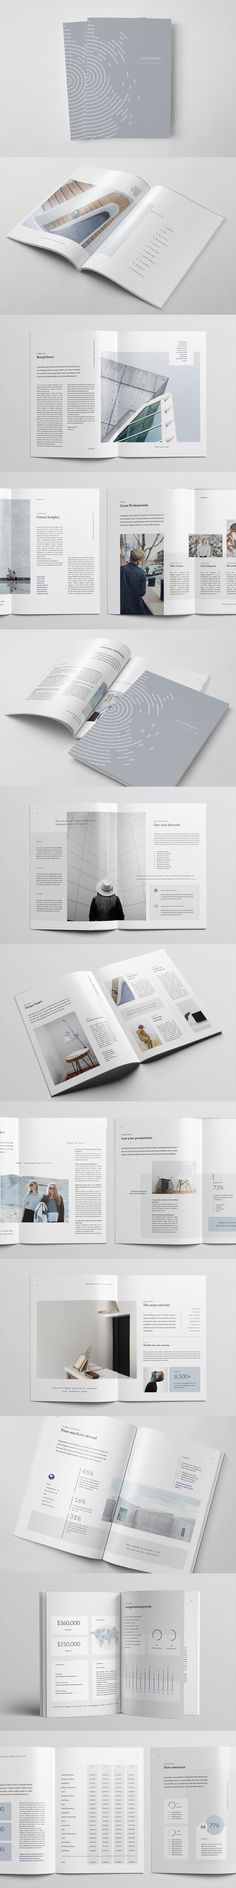 28 Pages Annual Report Template InDesign INDD - A4 and US letter